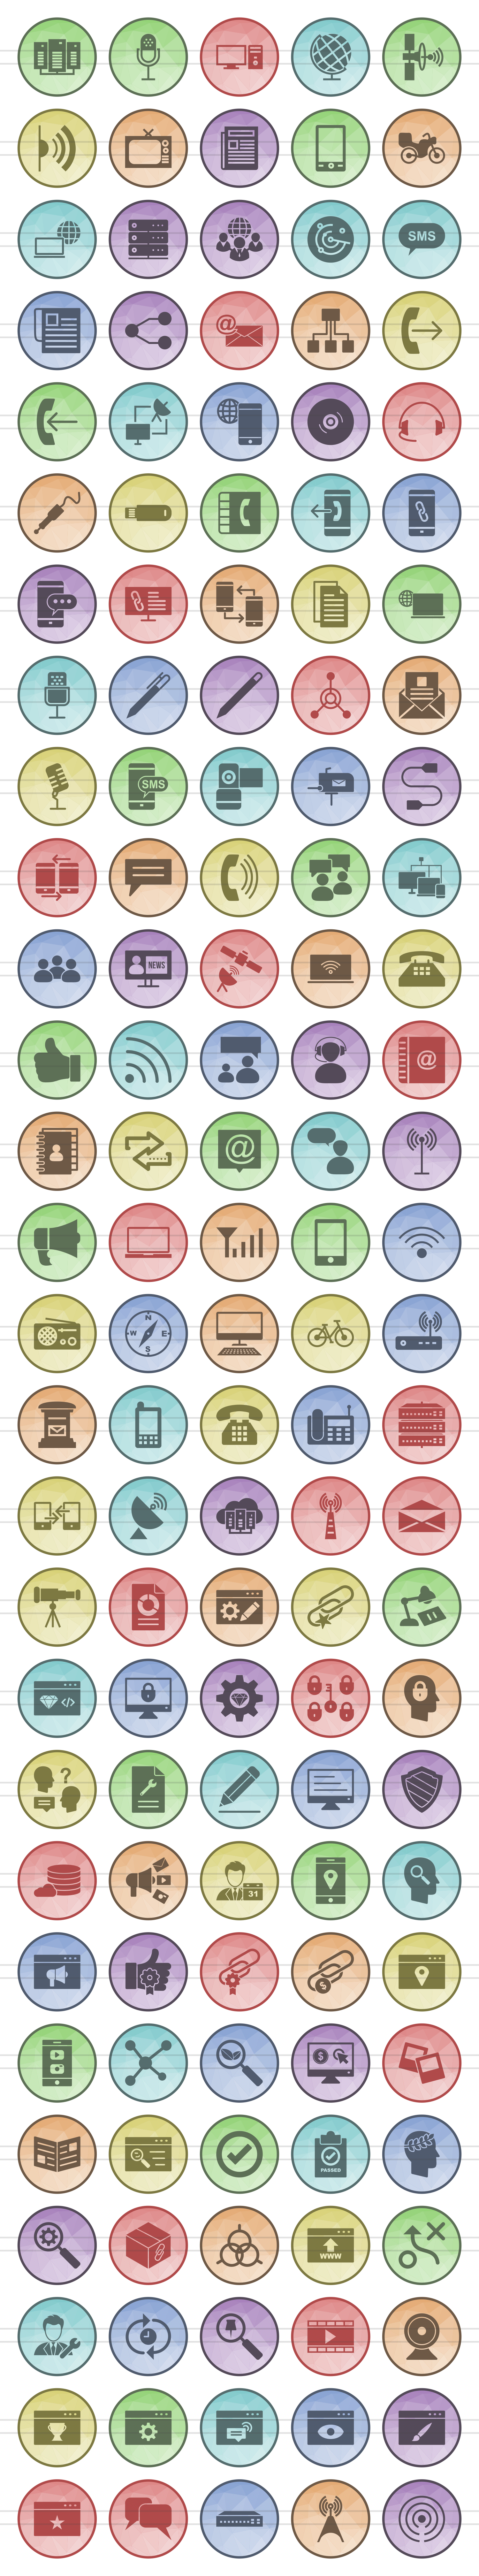 140 IT & Communication Filled Low Poly Icons example image 2